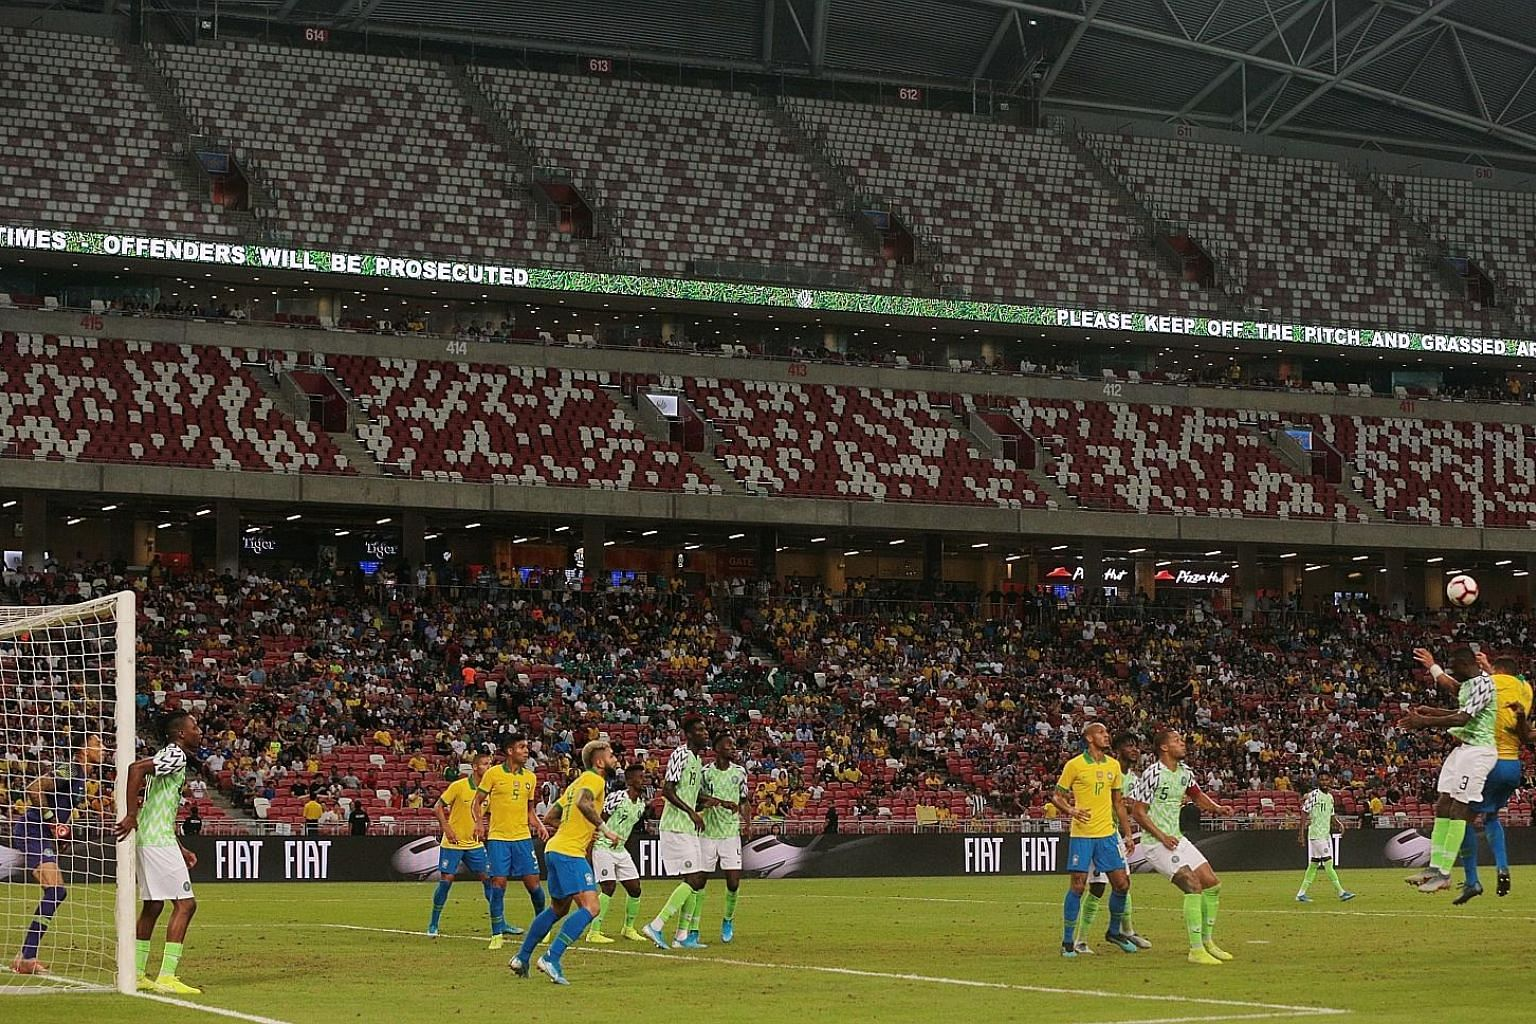 The higher tiers of the 55,000-capacity National Stadium were empty for last Sunday's Brazil v Nigeria friendly game (above) and also last Thursday's Brazil v Senegal match. ST PHOTO: JASON QUAH